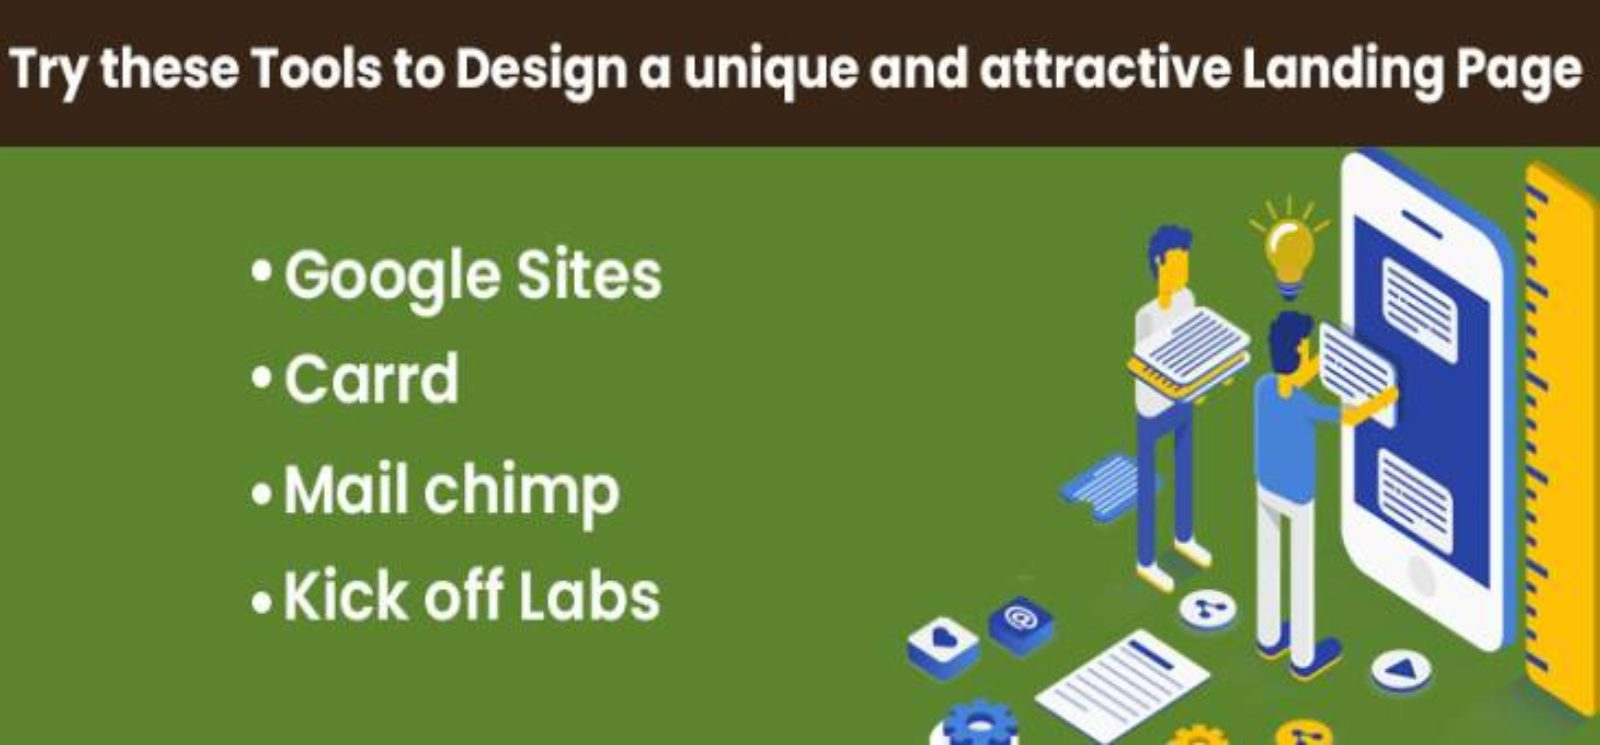 Try these Tools to Design a unique and attractive Landing Page